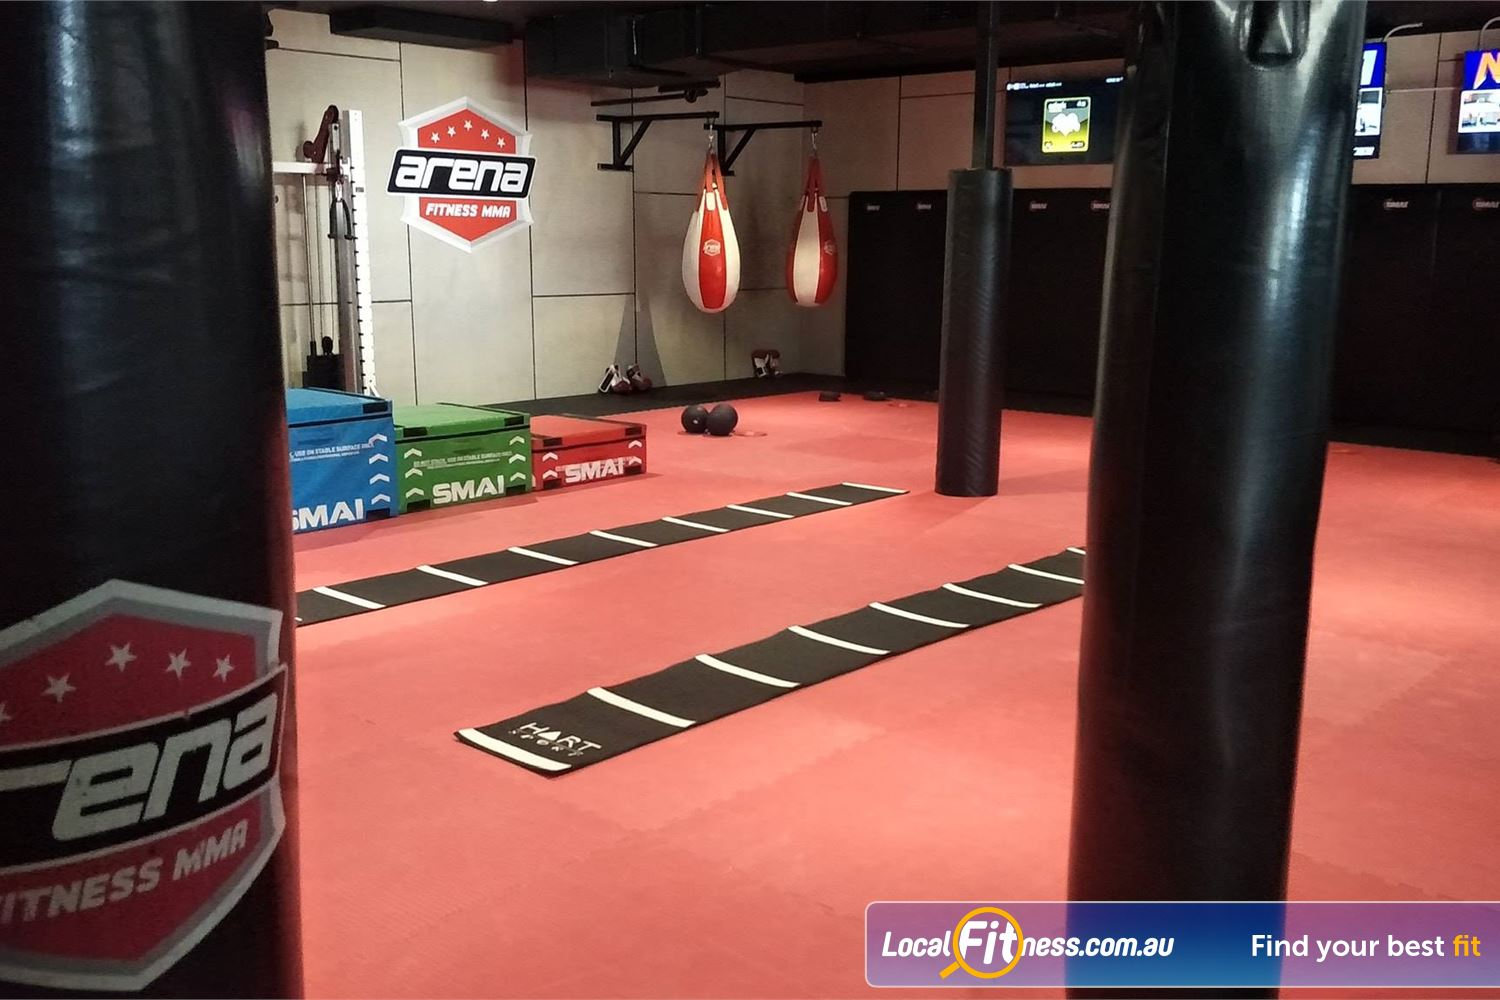 Goodlife Health Clubs Carindale Coach-led HIIT and functional training classes.